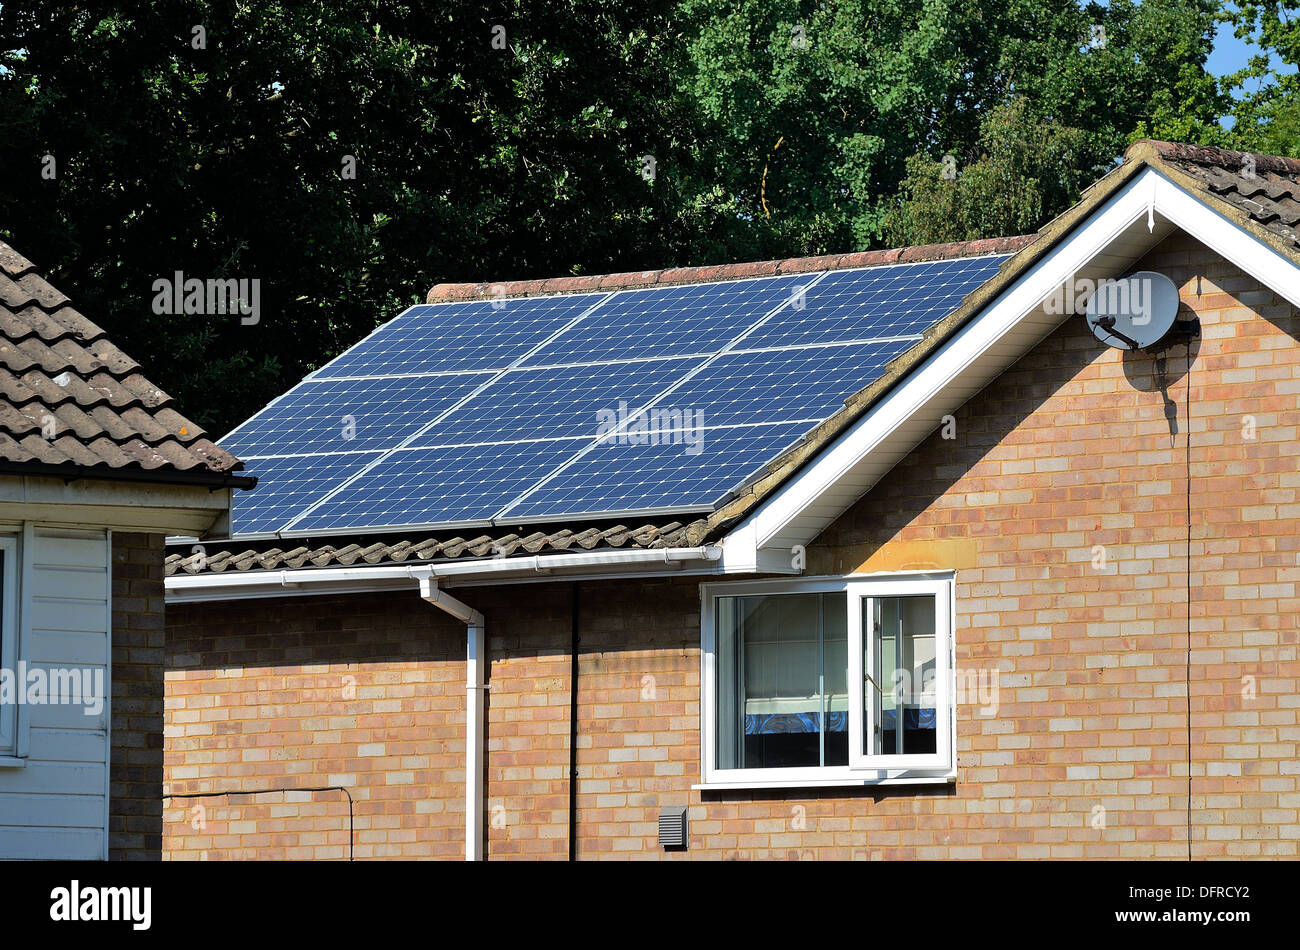 Suburban house with solar panels on roof - Stock Image